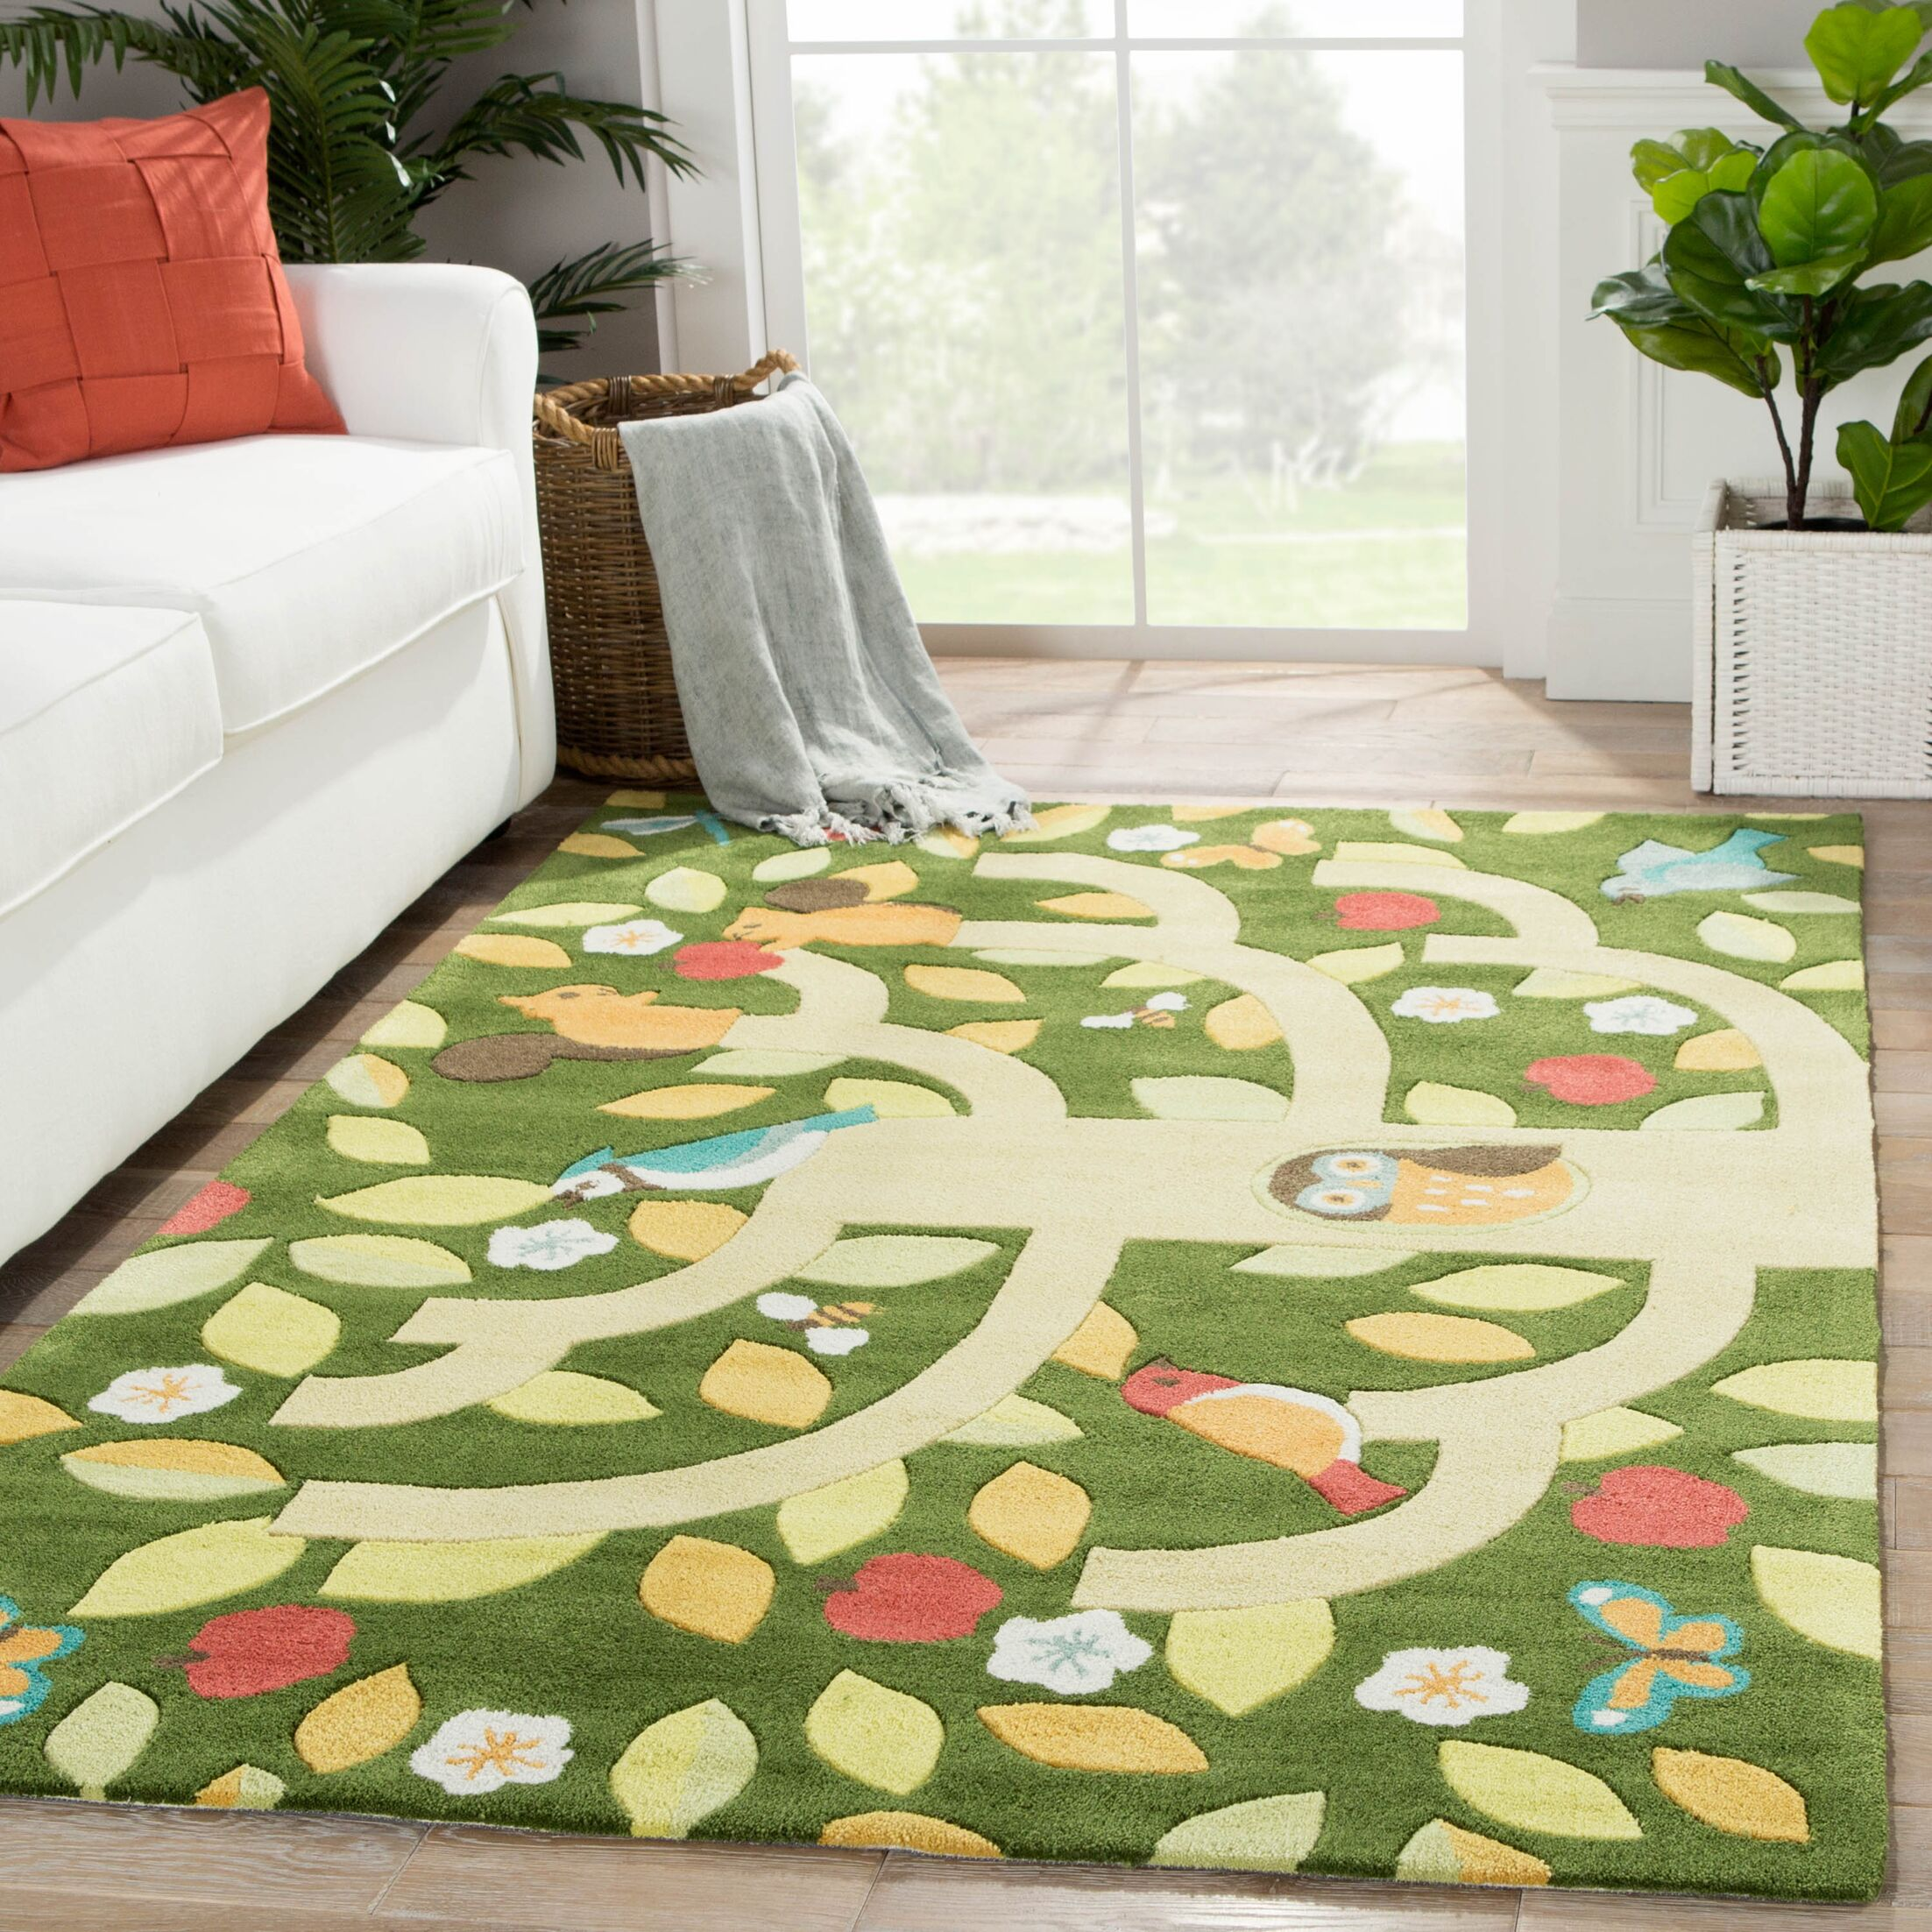 Annie Hand-Tufted Green/Yellow Area Rug Rug Size: Rectangle 3' x 5'